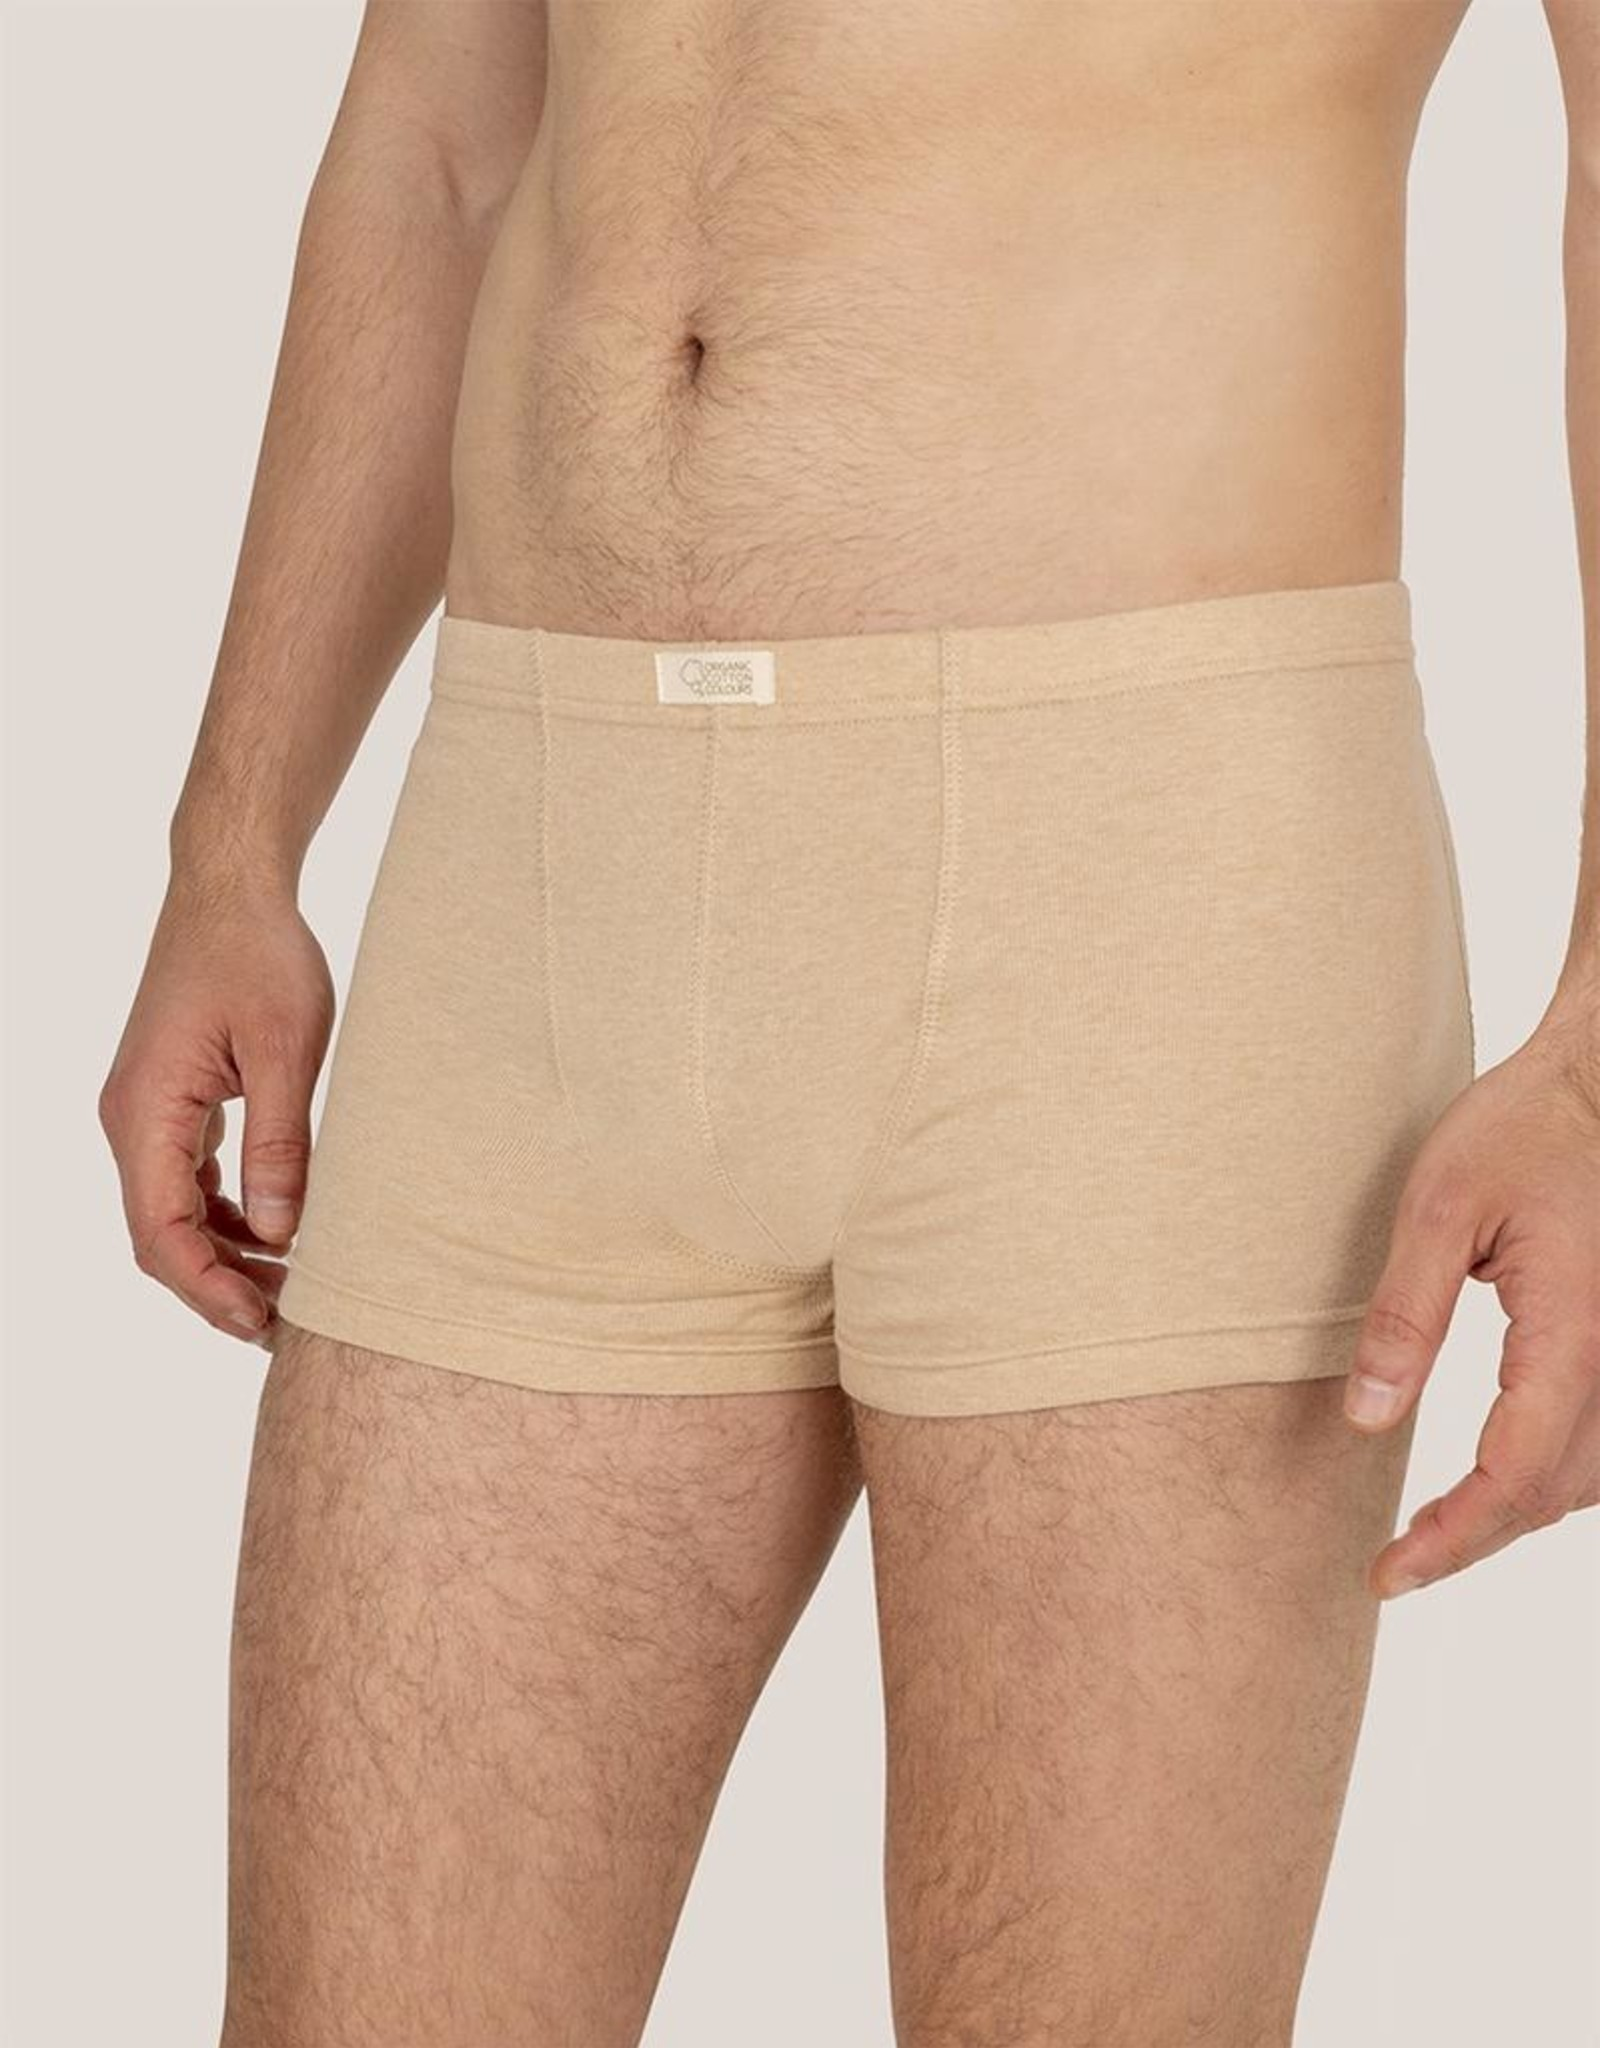 Short boxer fitted for men.